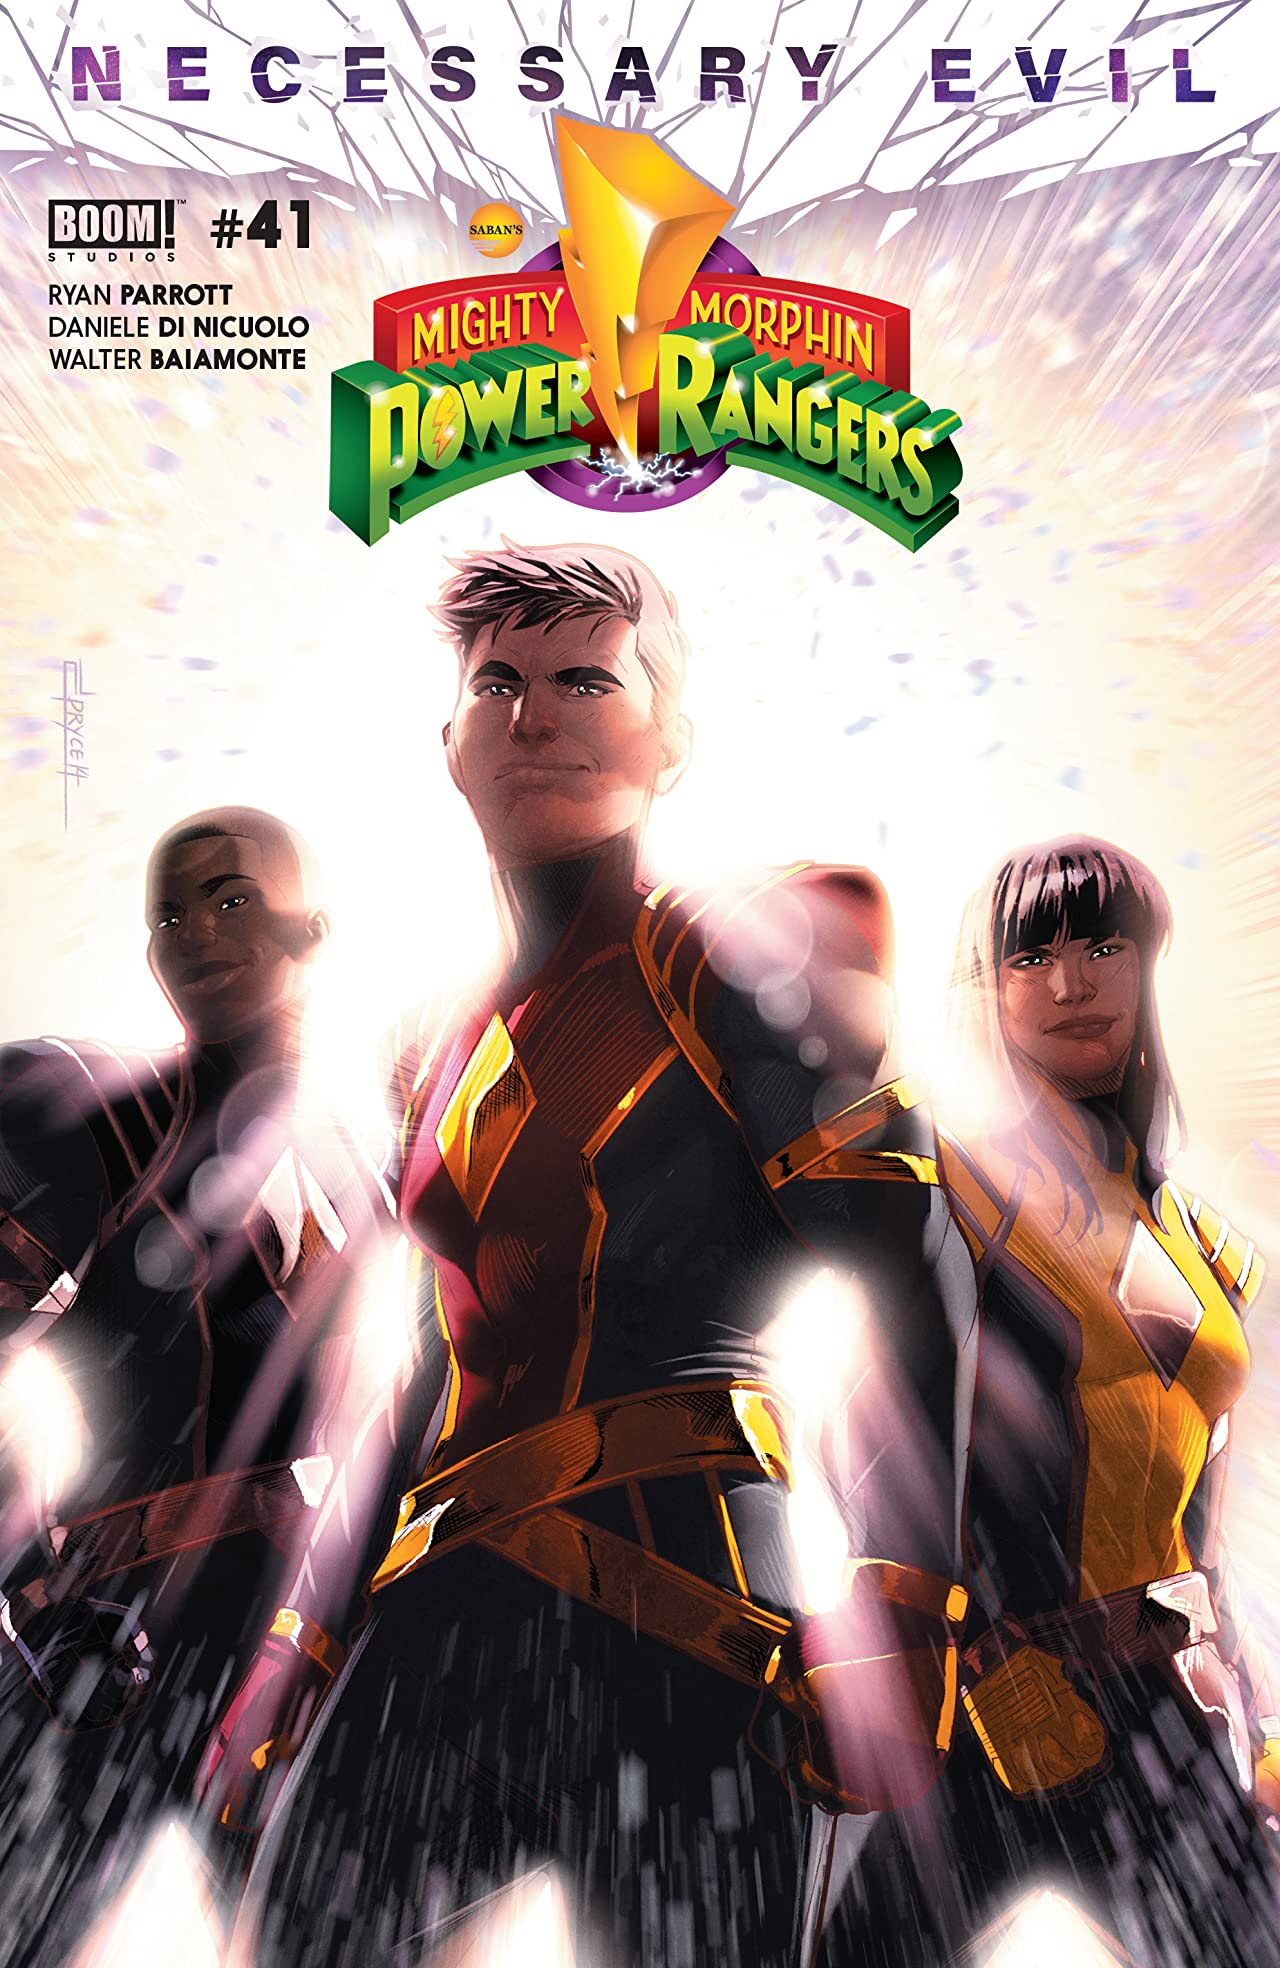 Mighty Morphin Power Rangers No.41